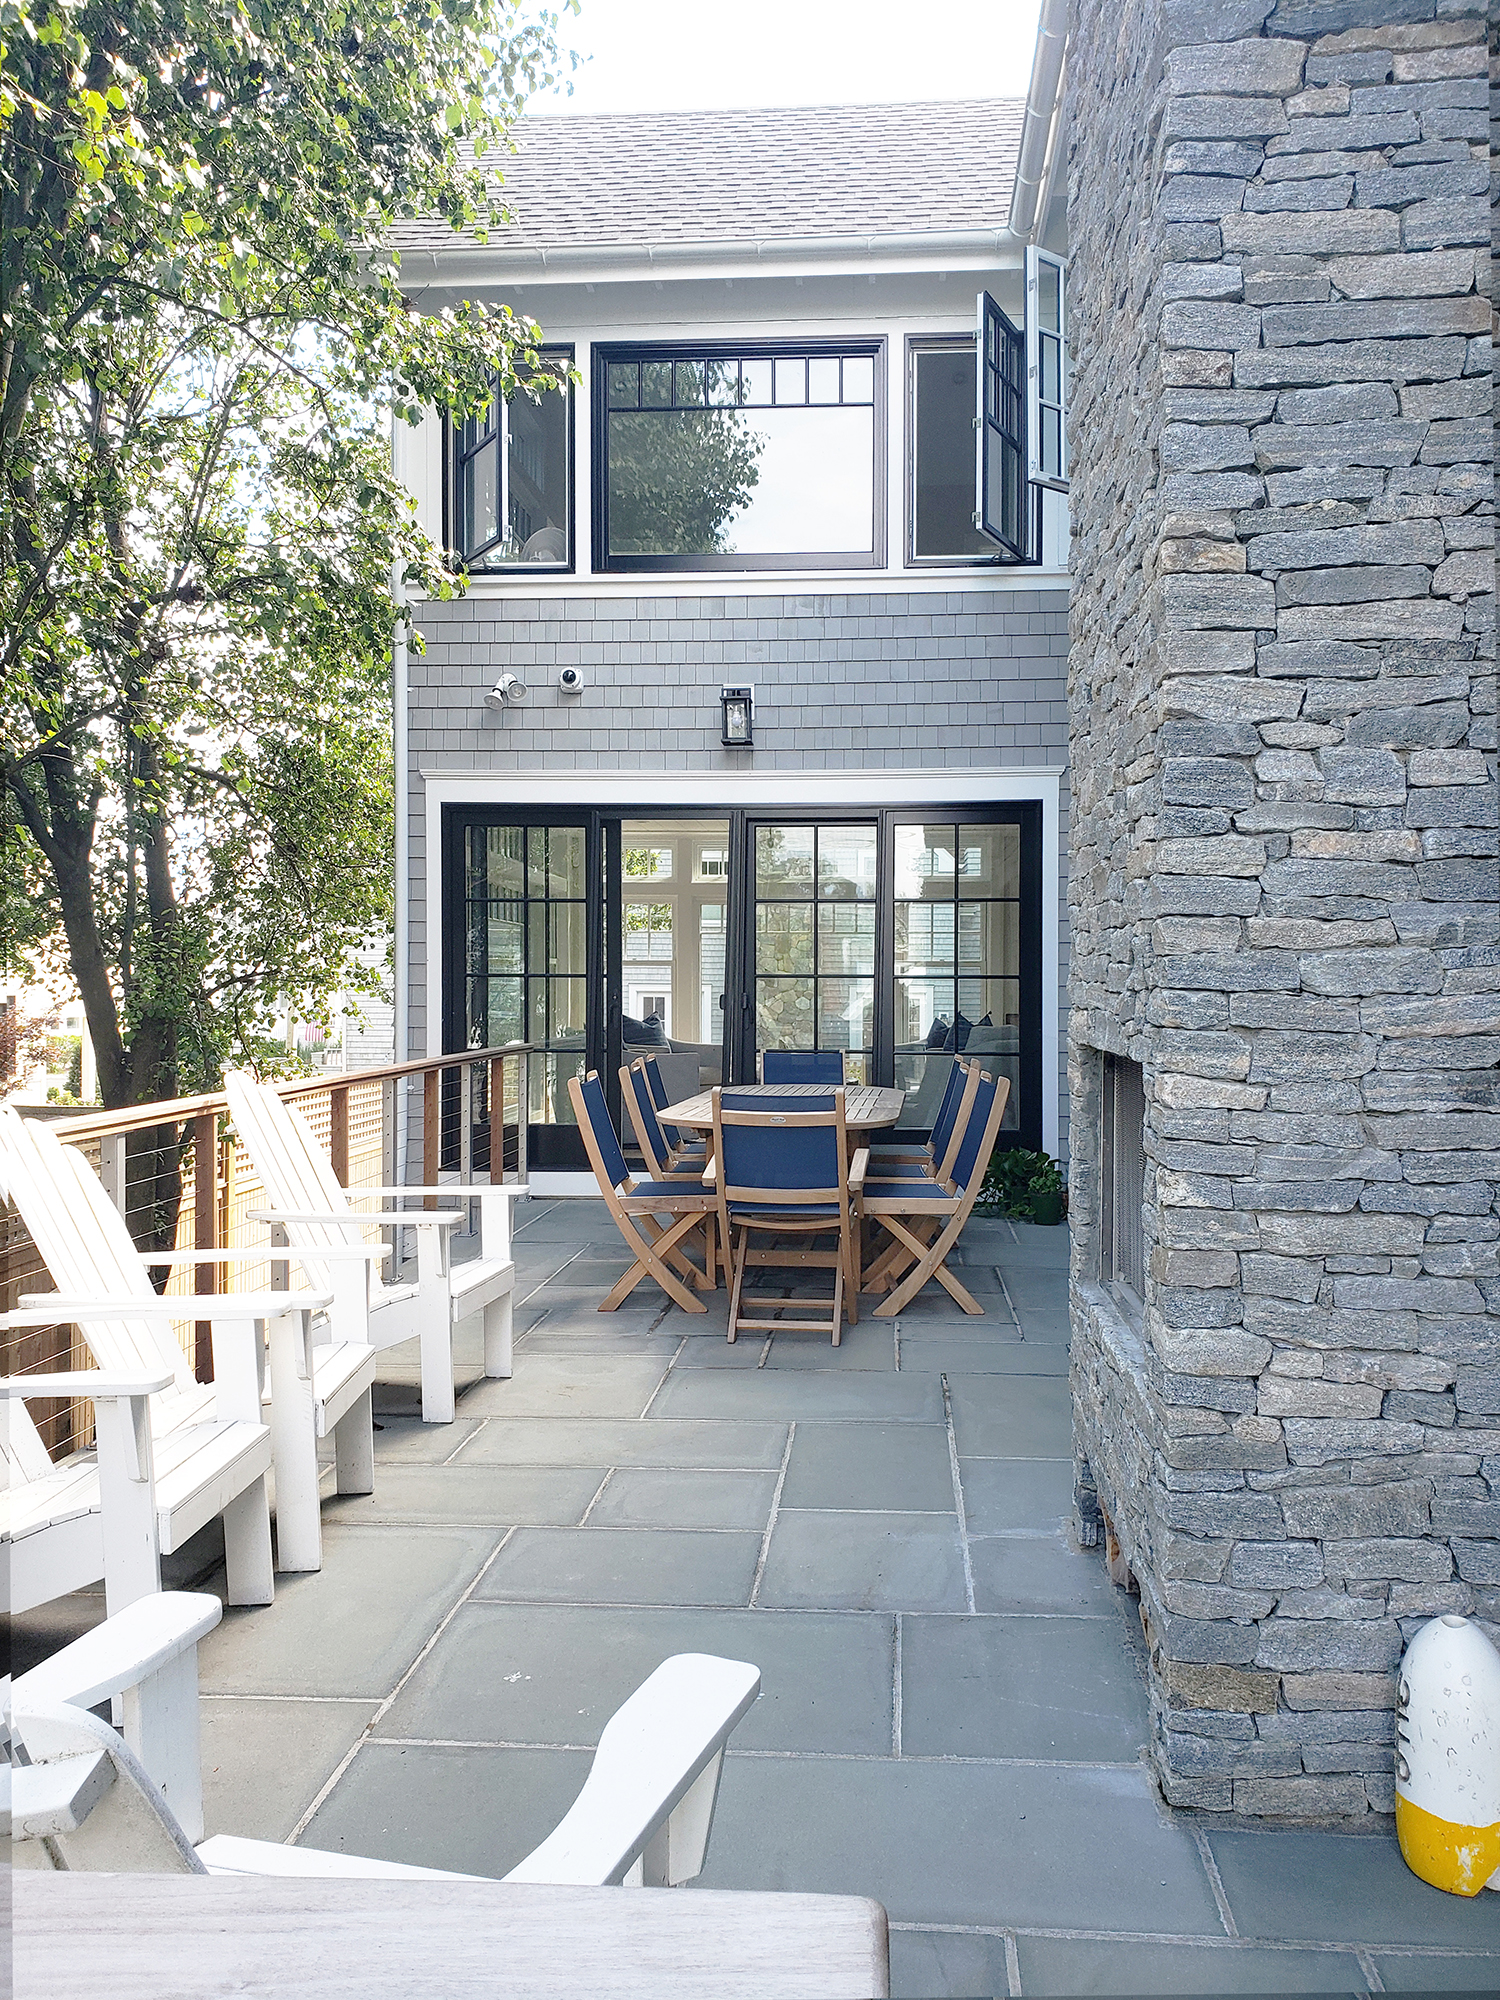 Patio resized for web.jpg